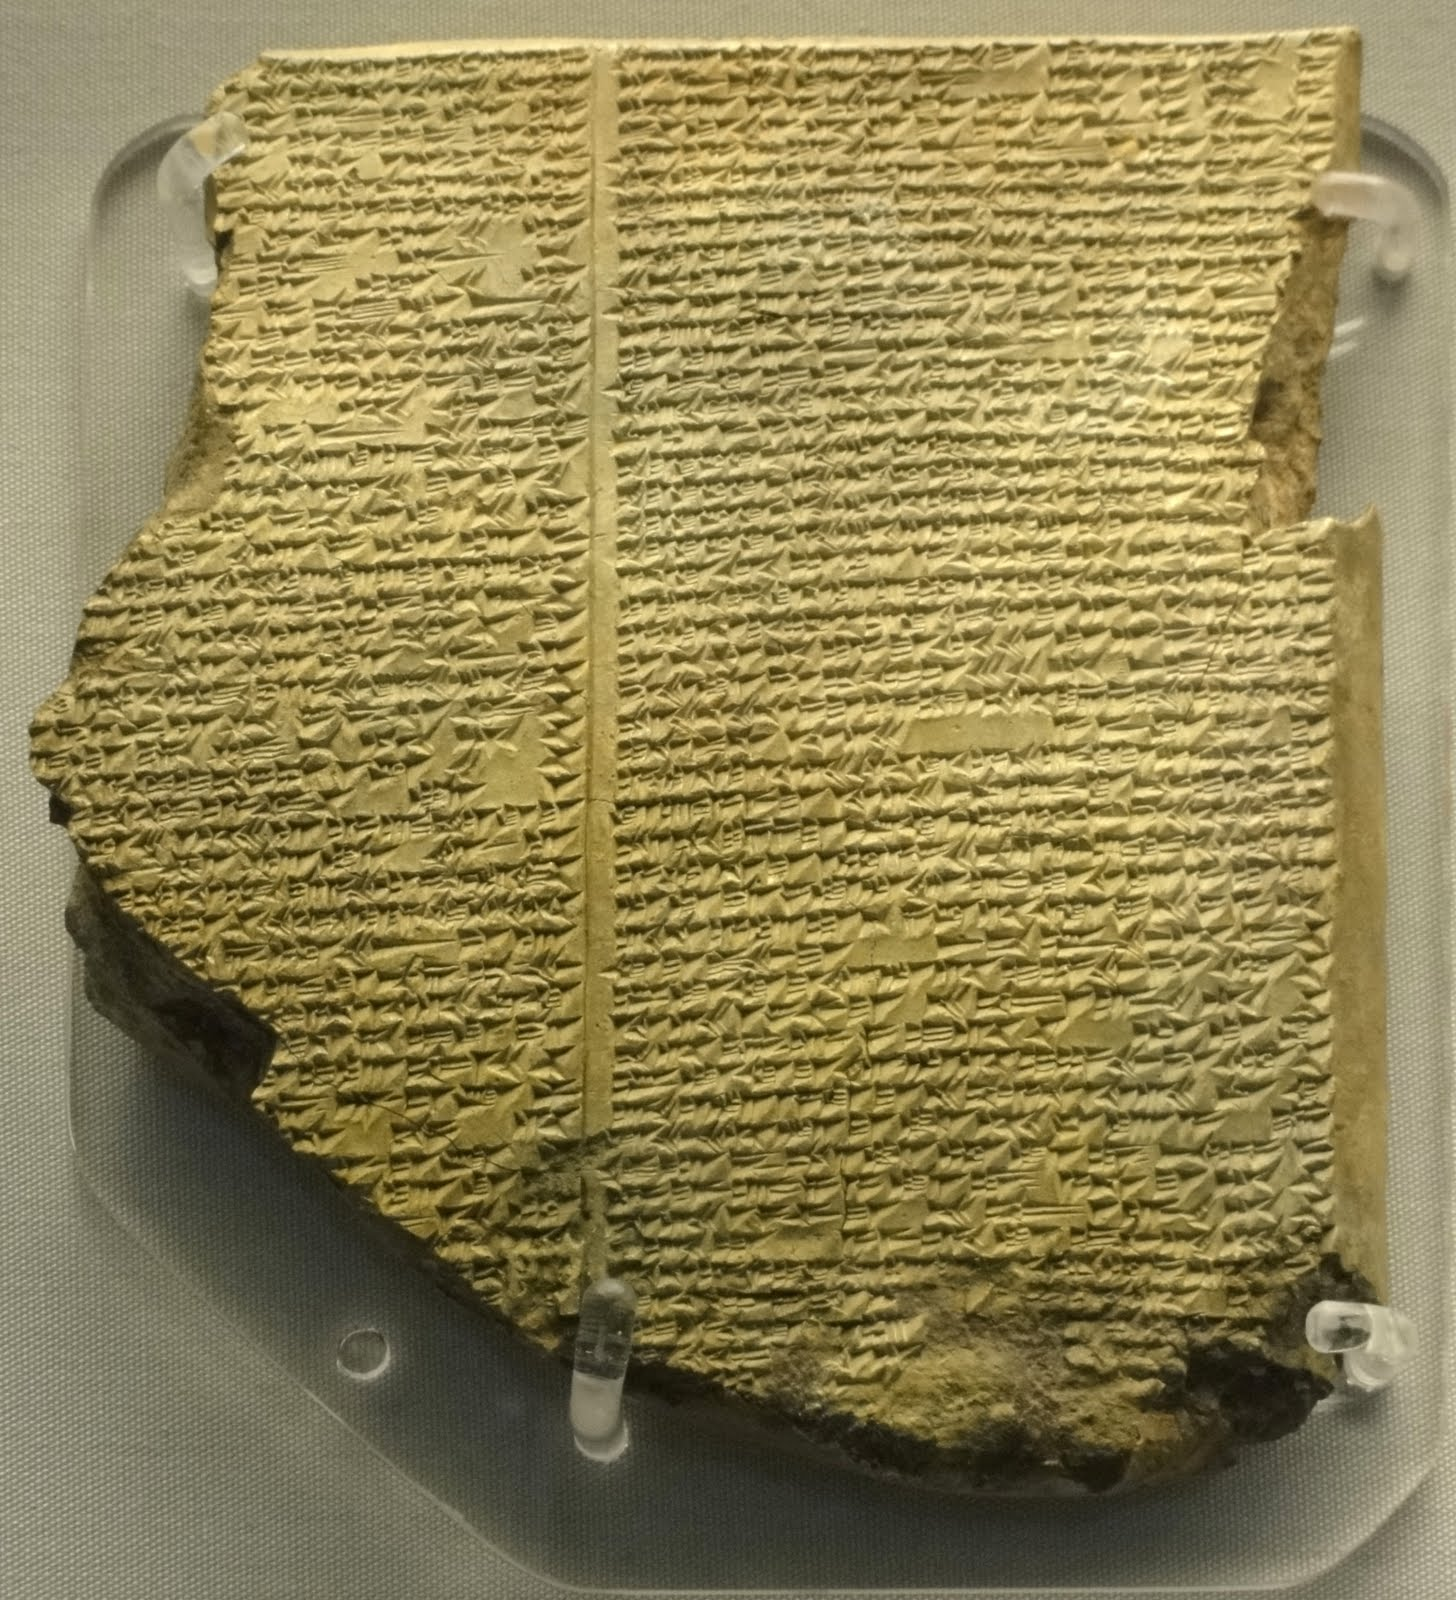 Epic of Gilgamesh Text